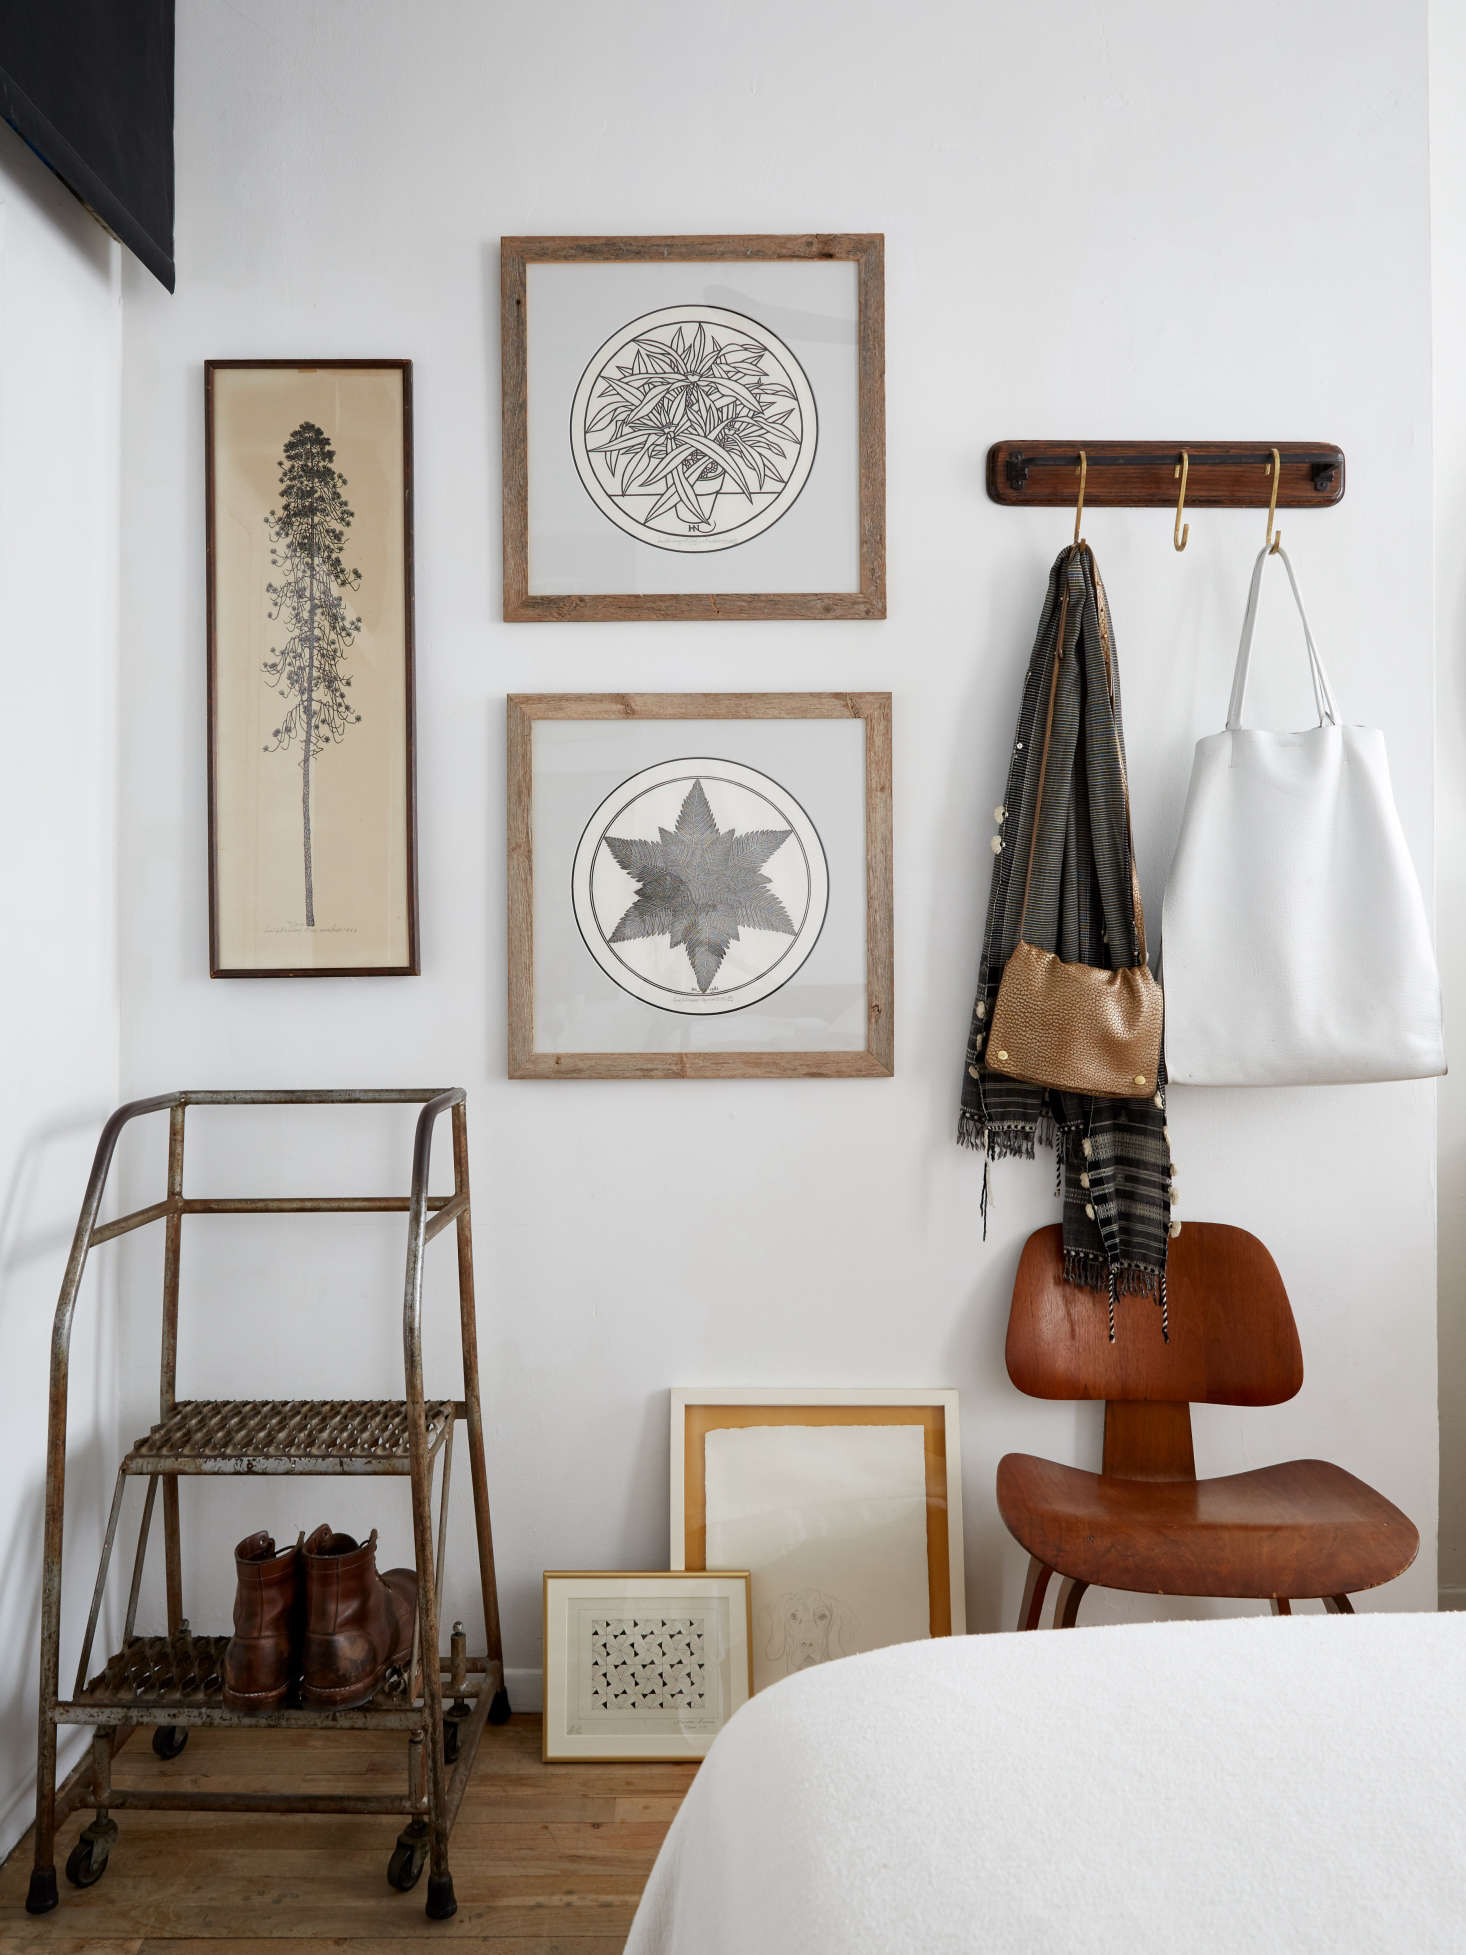 Framed black and white prints and an industrial step stool on wheels in an artful apartment bedroom